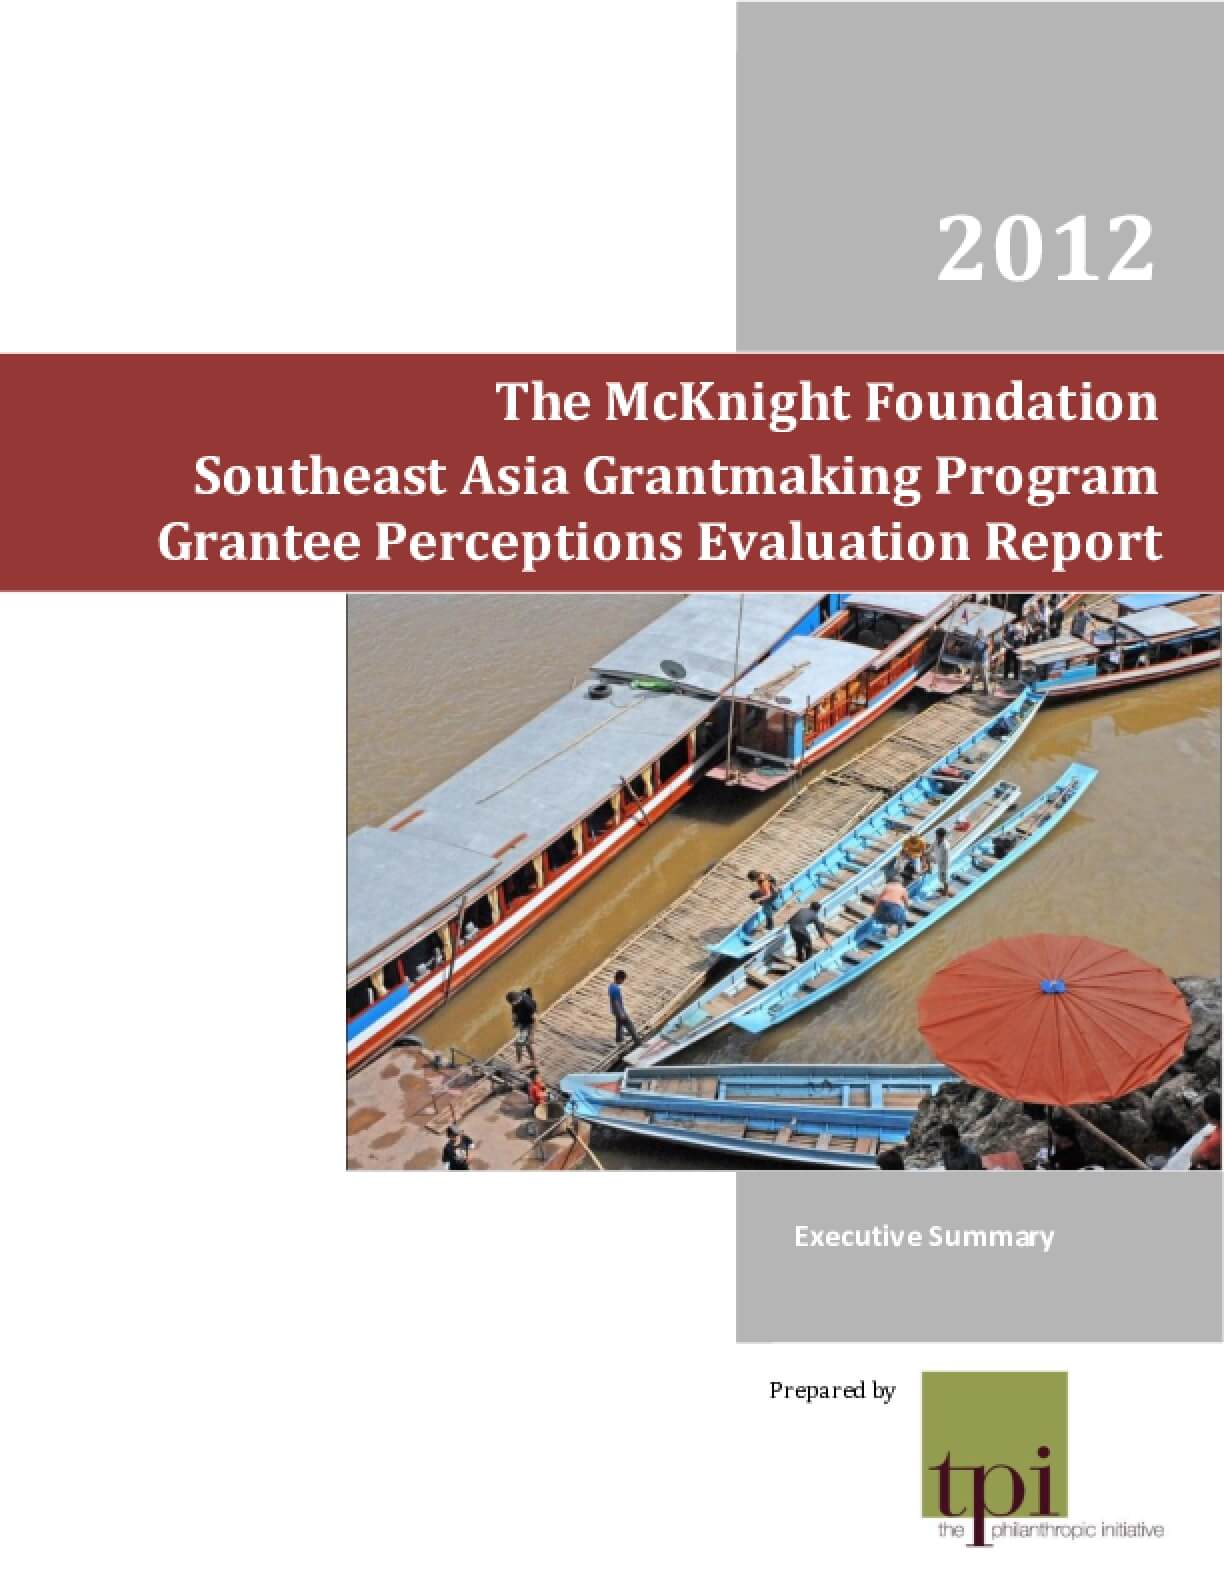 Southeast Asia Grantmaking Program Grantee Perceptions Evaluation Report, Executive Summary